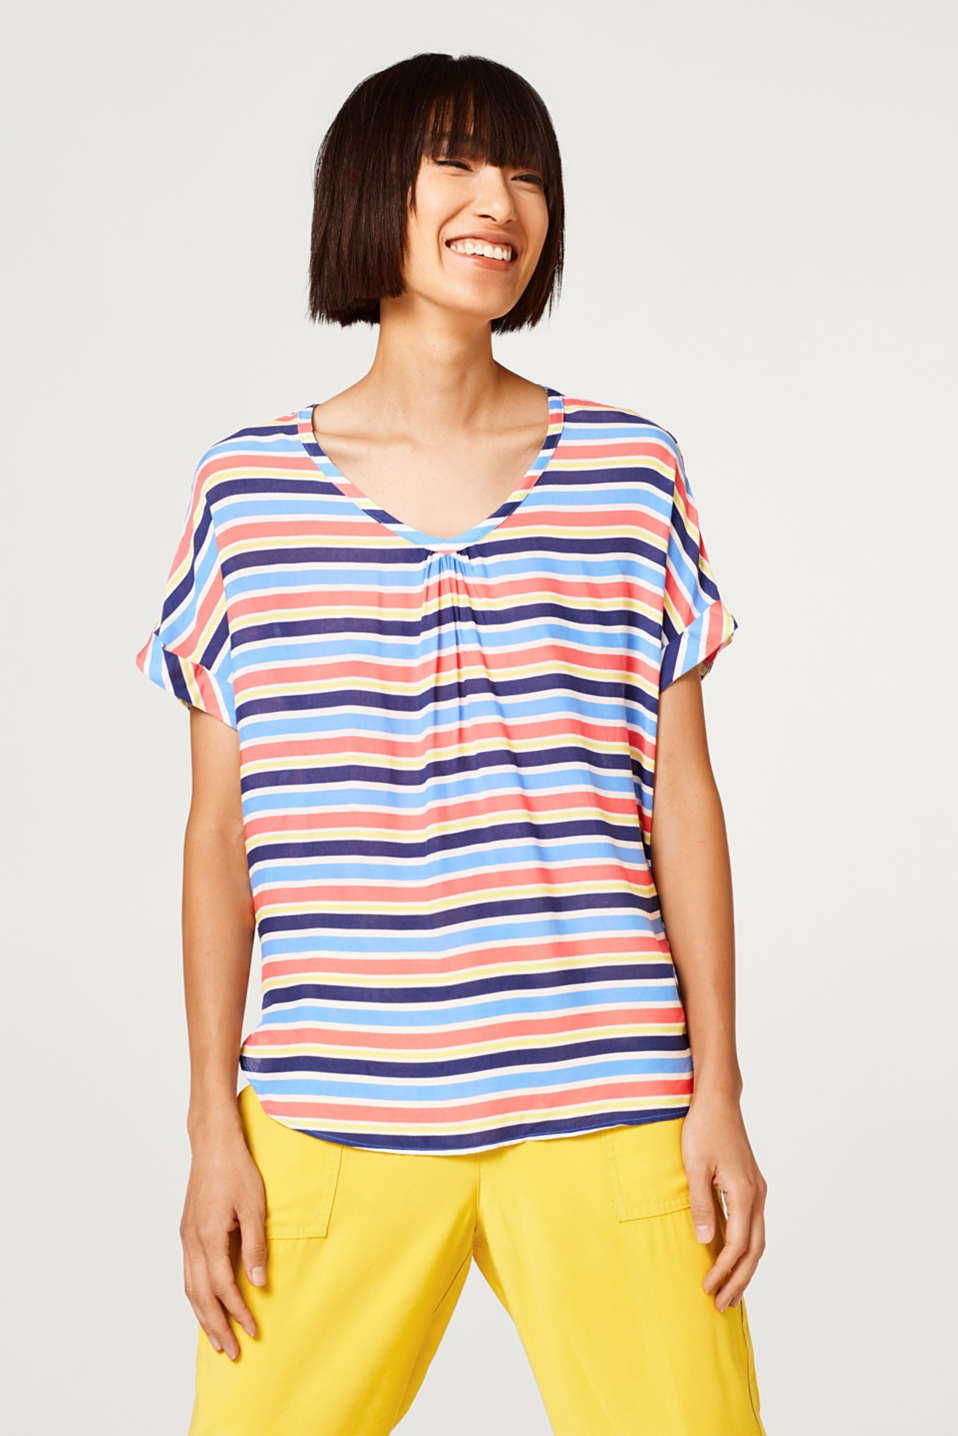 Esprit - Blouse top with a colourful striped pattern